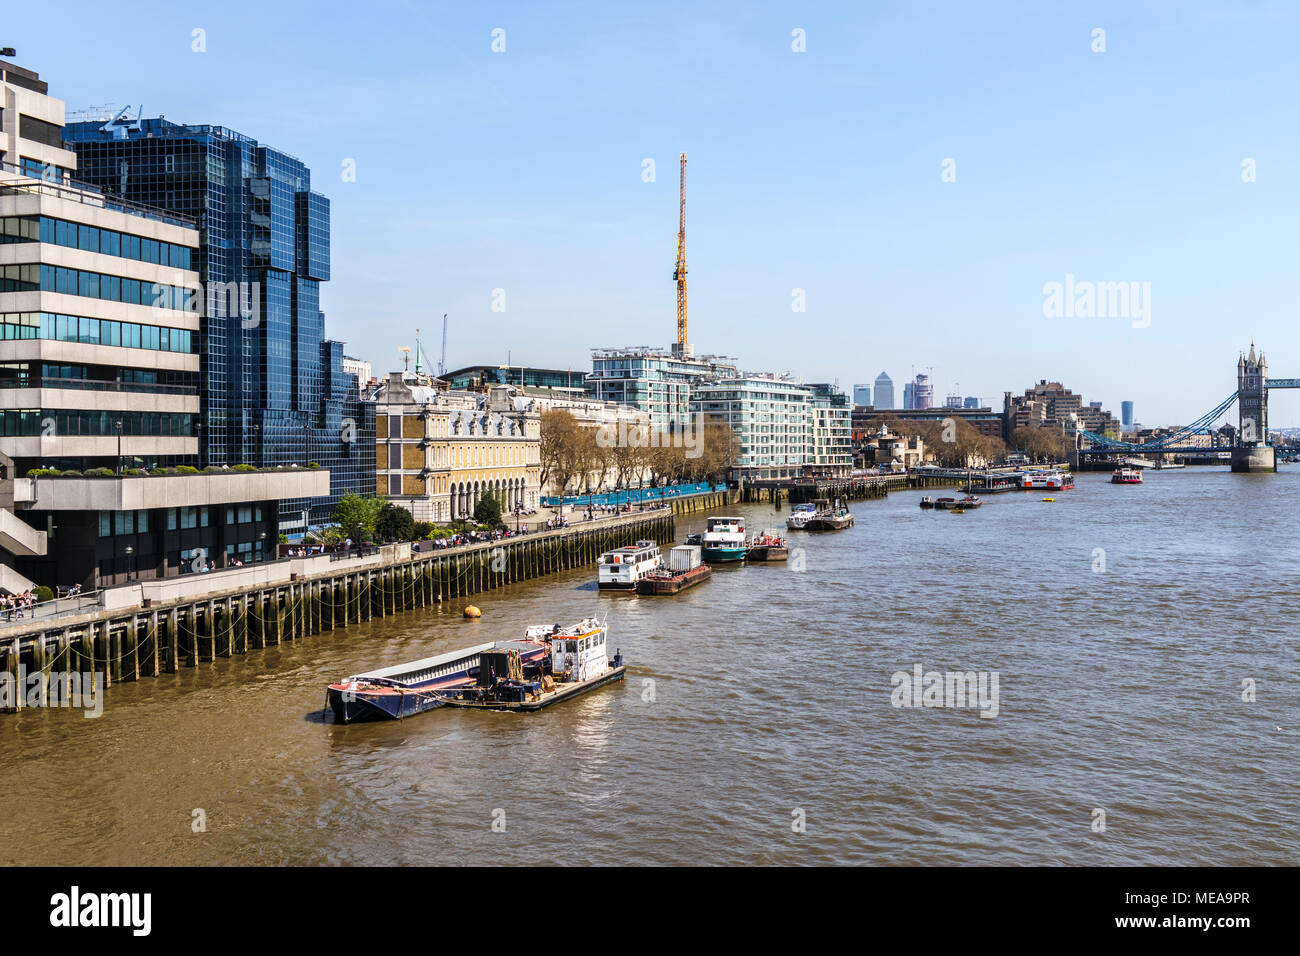 Port of London Authority vessel Driftwood III used for passive driftwood collection (PDC) moored in the River Thames Pool of London, UK - Stock Image